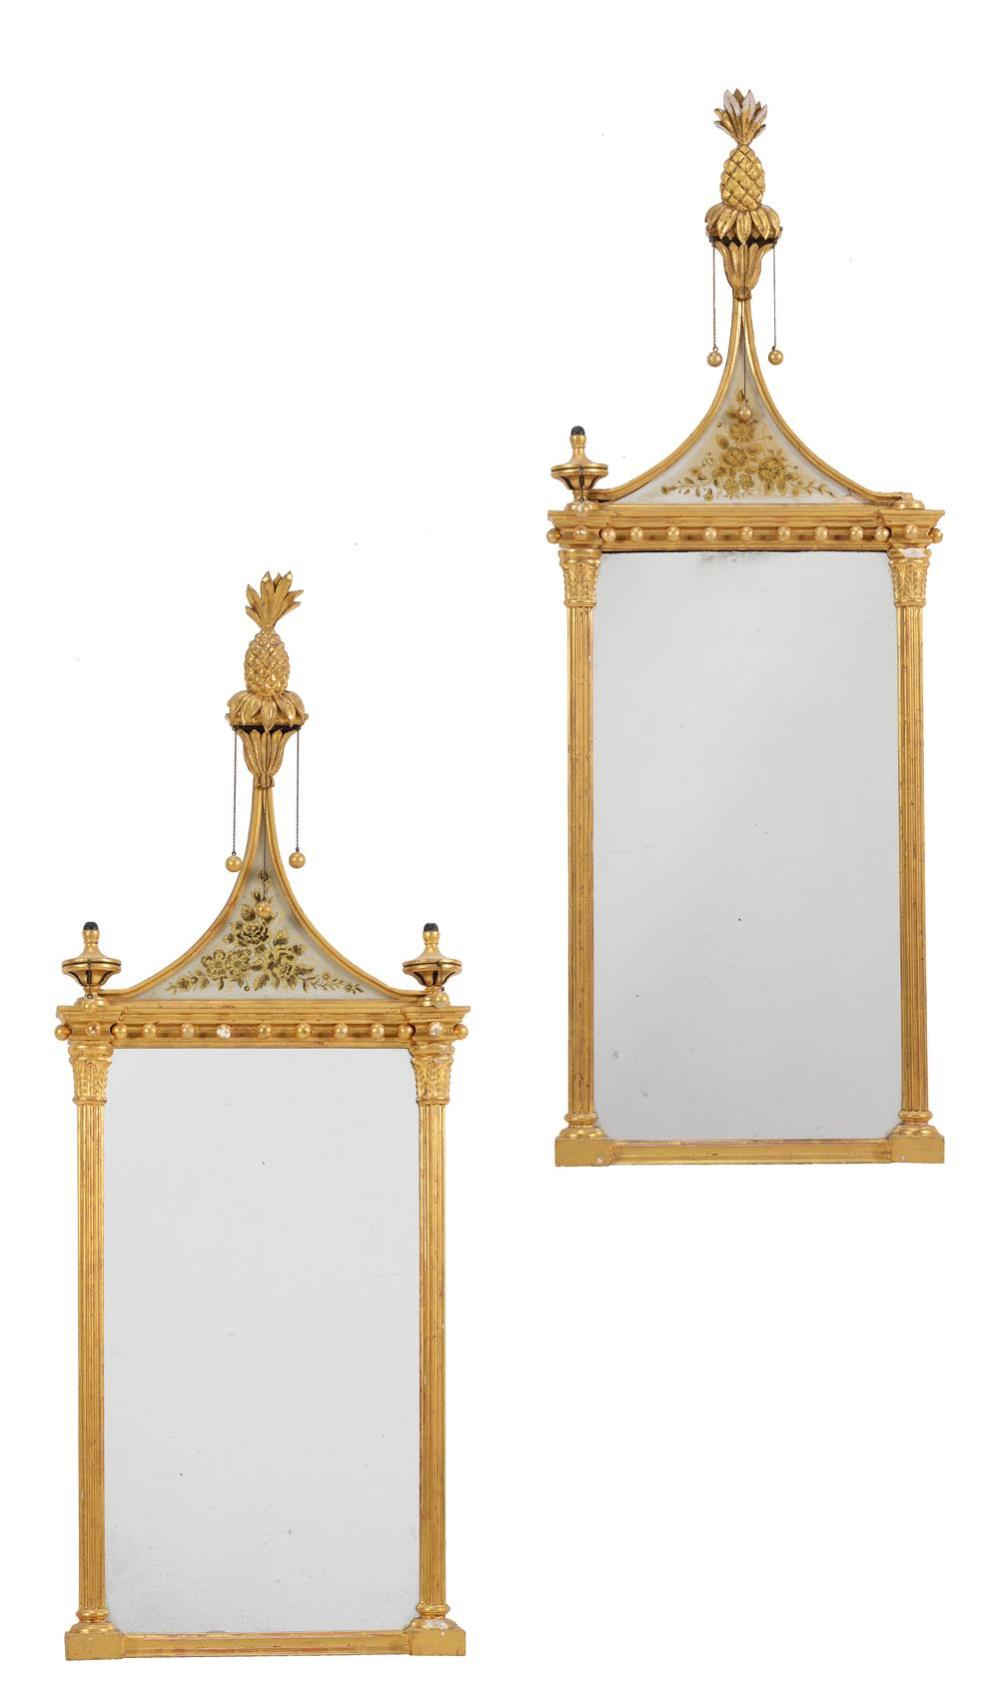 A pair of giltwood wall mirrors in Regency style